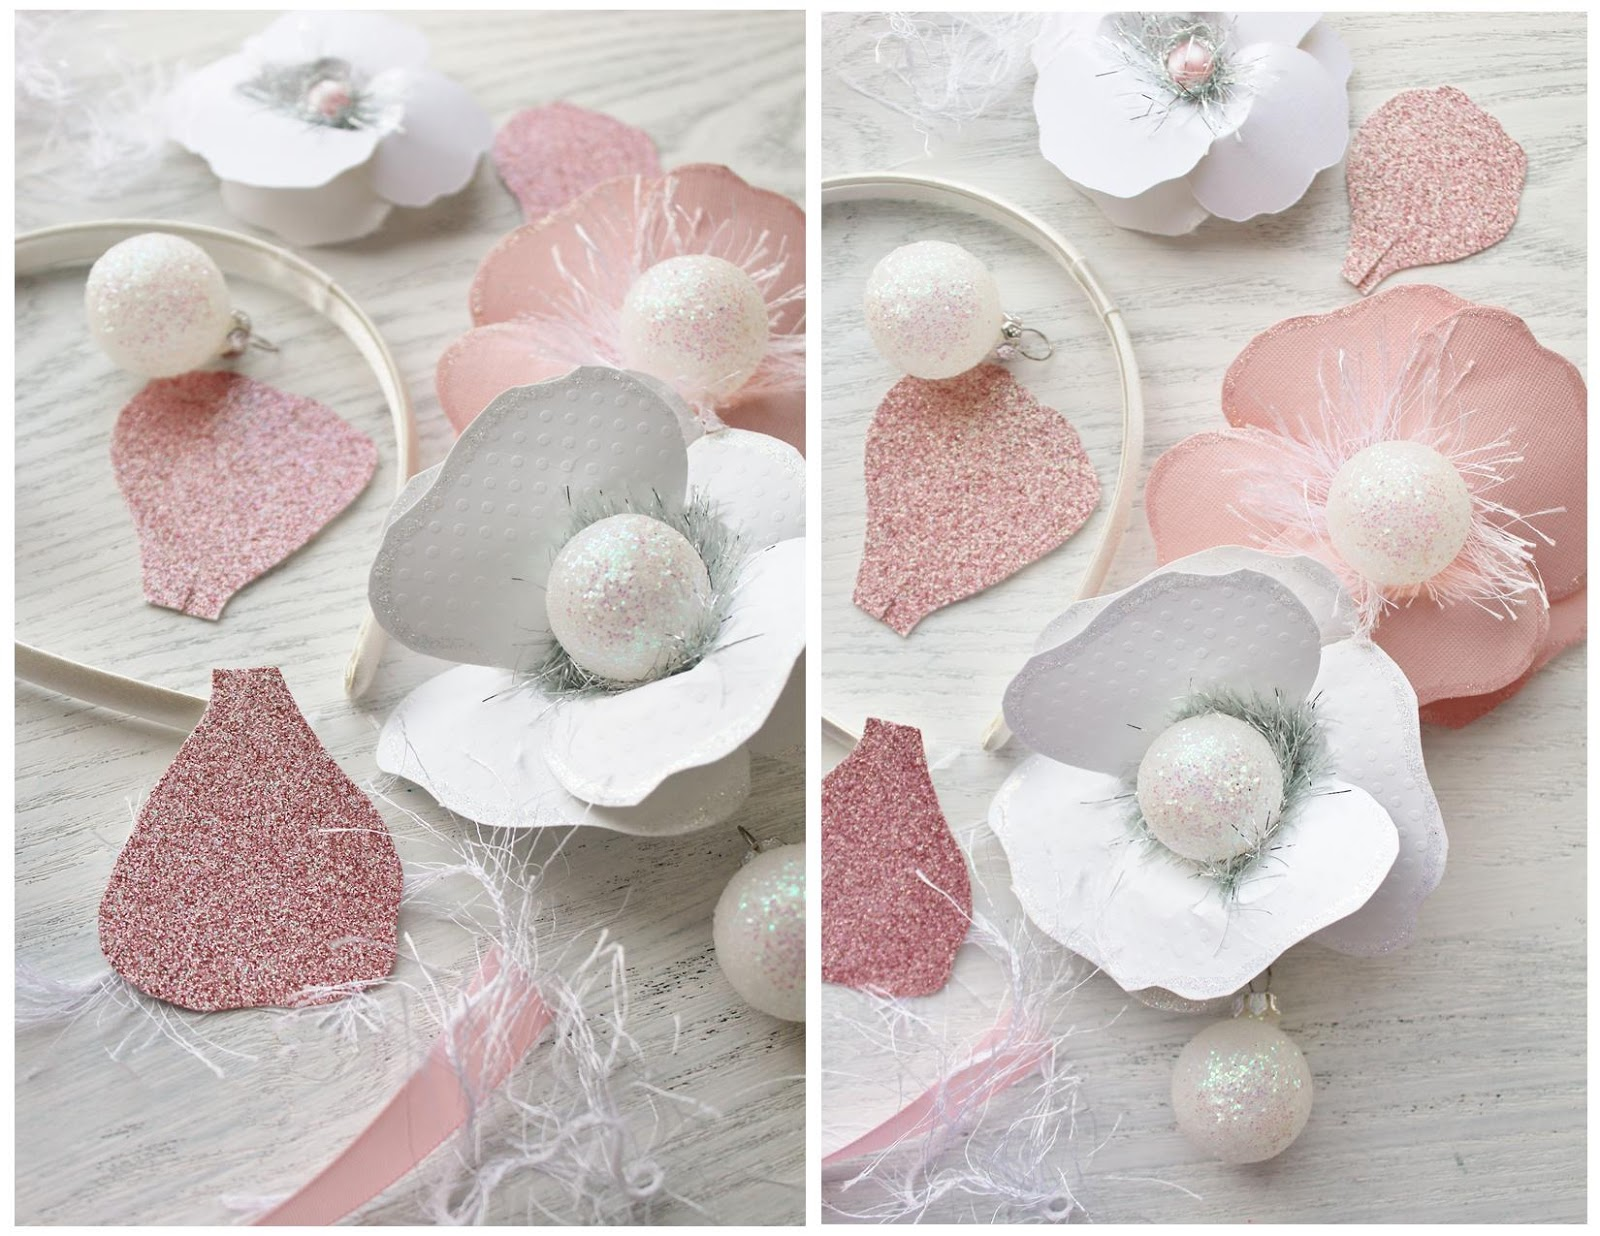 Icing Designs DIY Paper Floral Crown